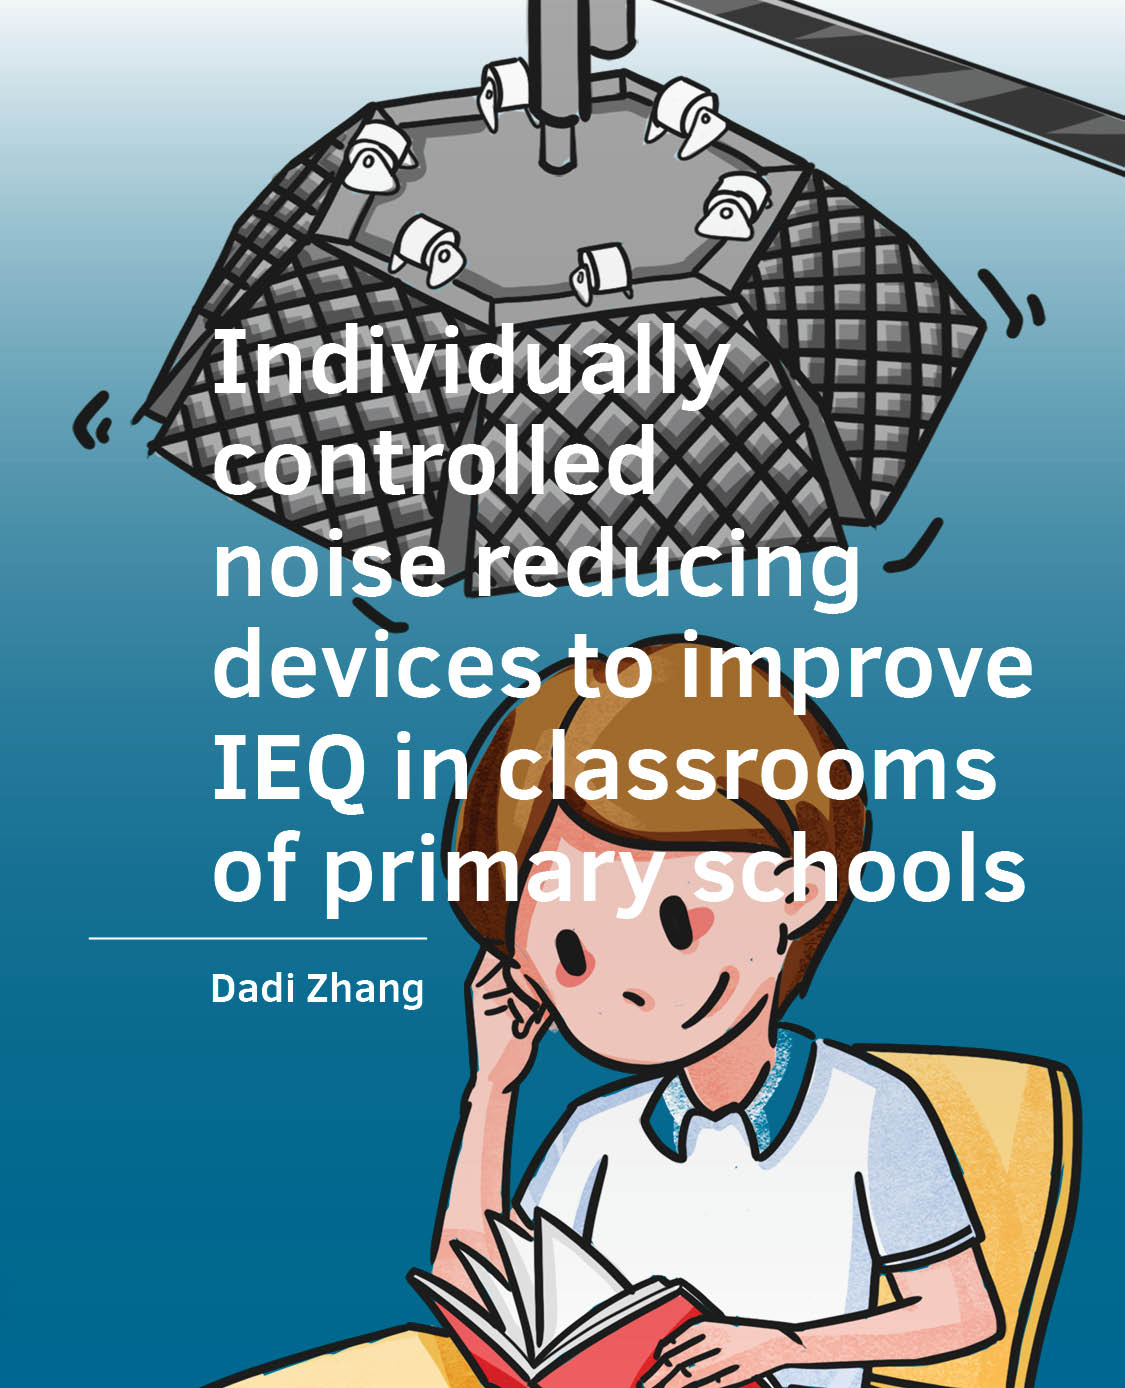 View No. 10 (2020): Individually controlled noise reducing devices to improve IEQ in classrooms of primary schools